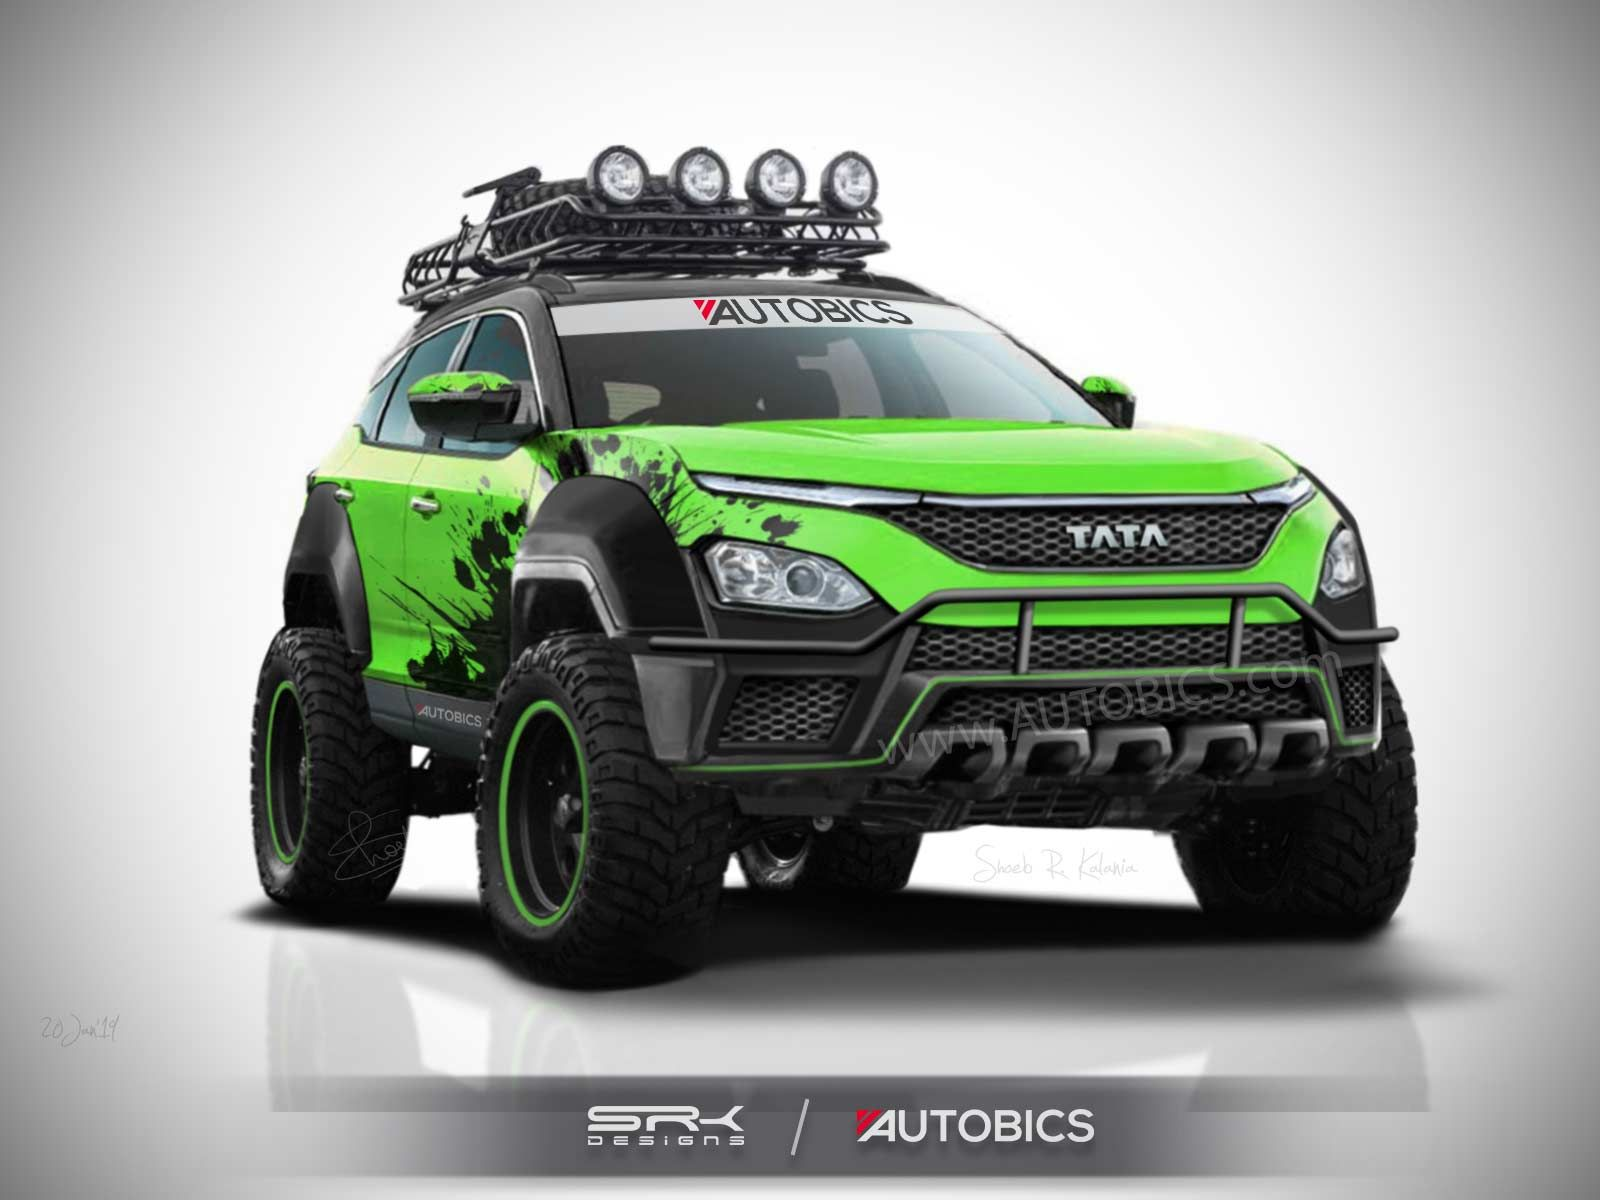 Tata Harrier Off Road Edition Concept Rendering Harrier Tata Offroad